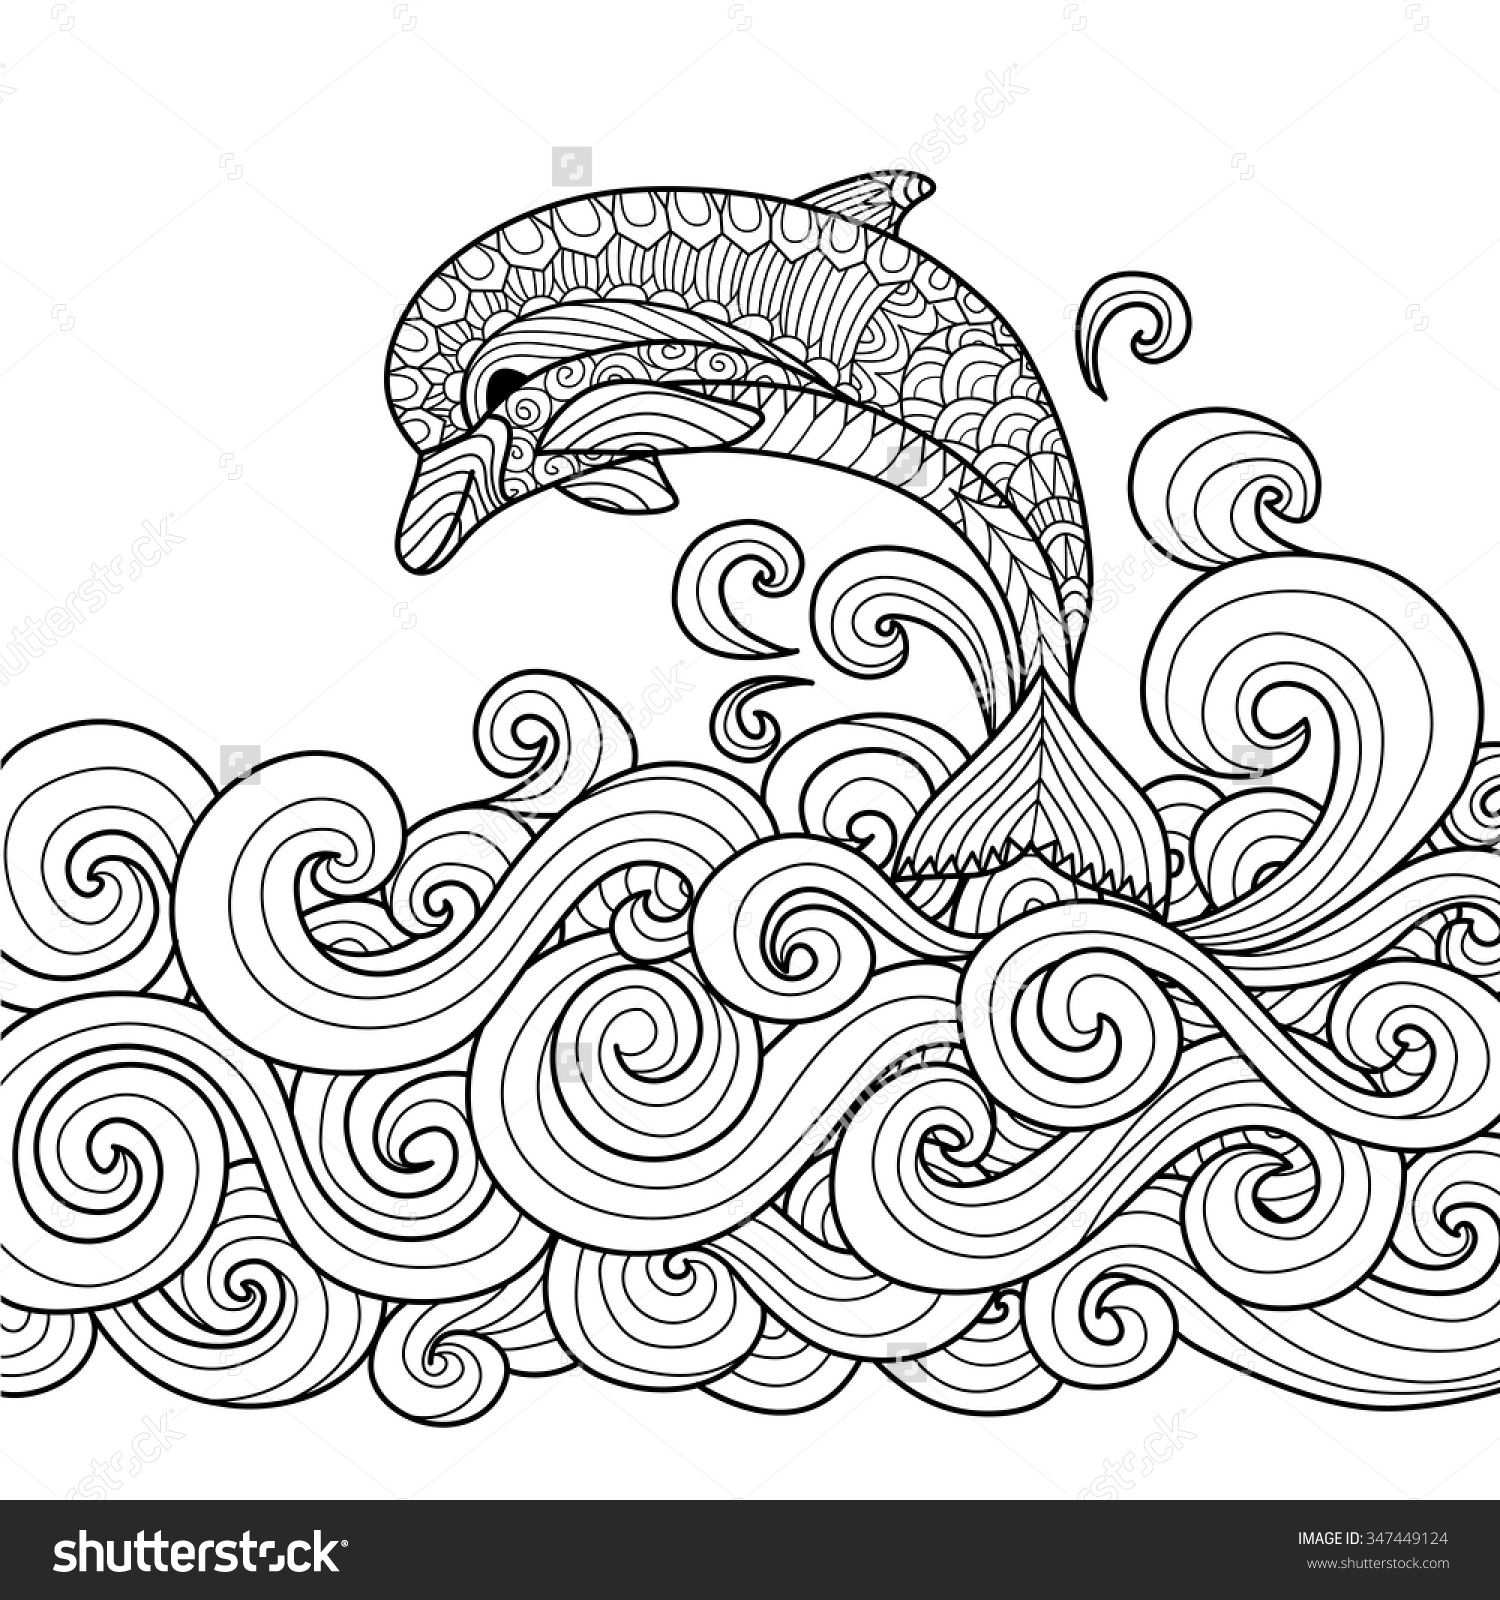 Hand Drawn Zentangle Dolphin With Scrolling Sea Wave For Coloring